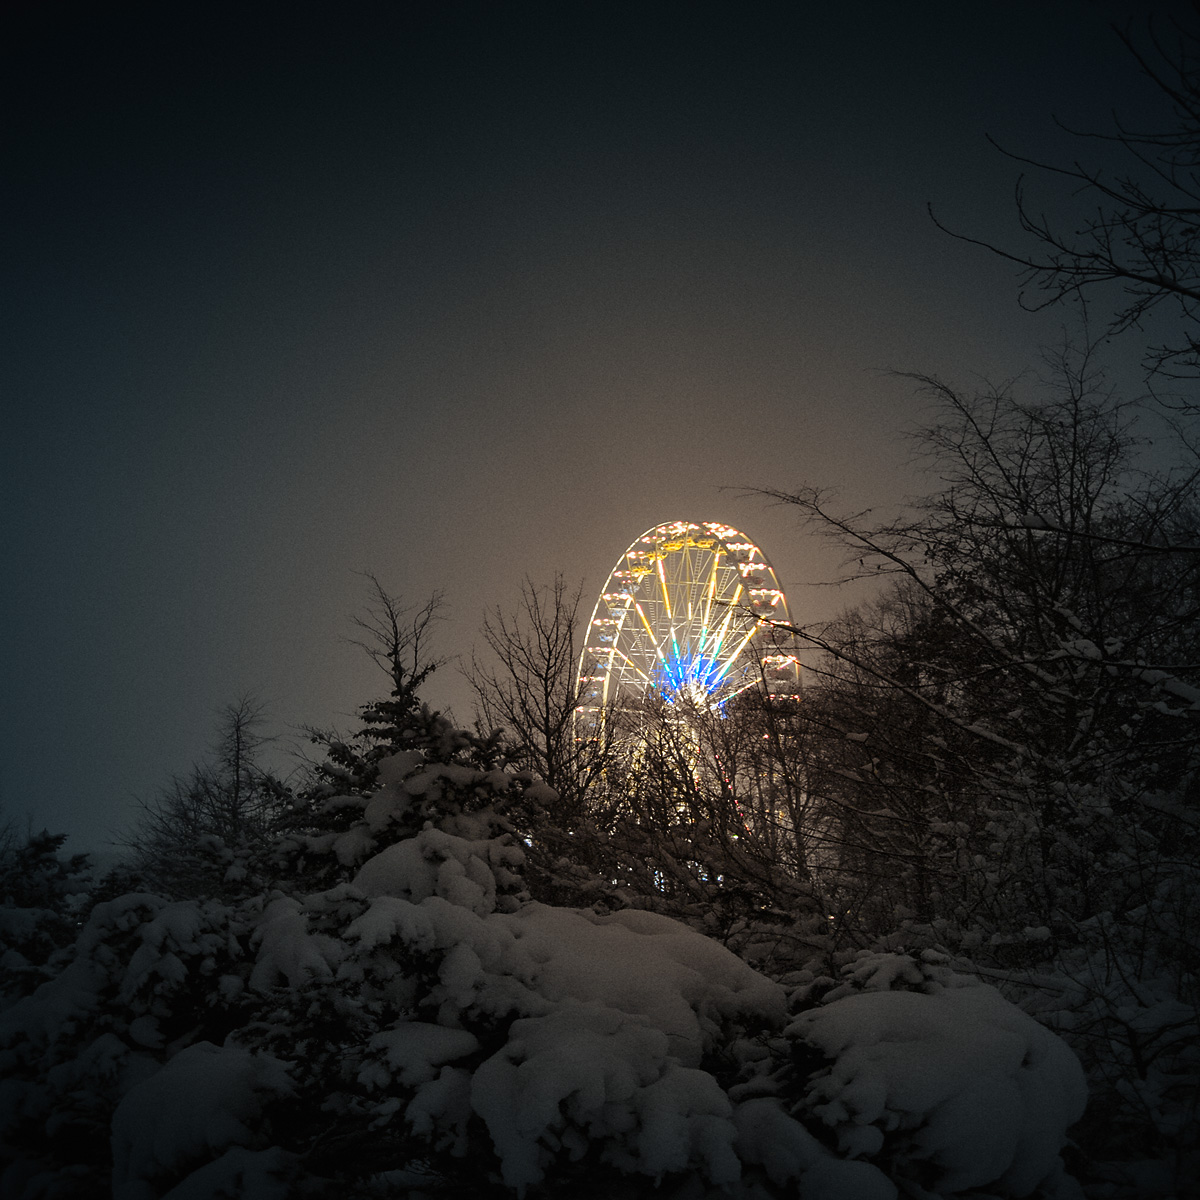 wonderland_ferris_wheel_in_snow_in_Berlin